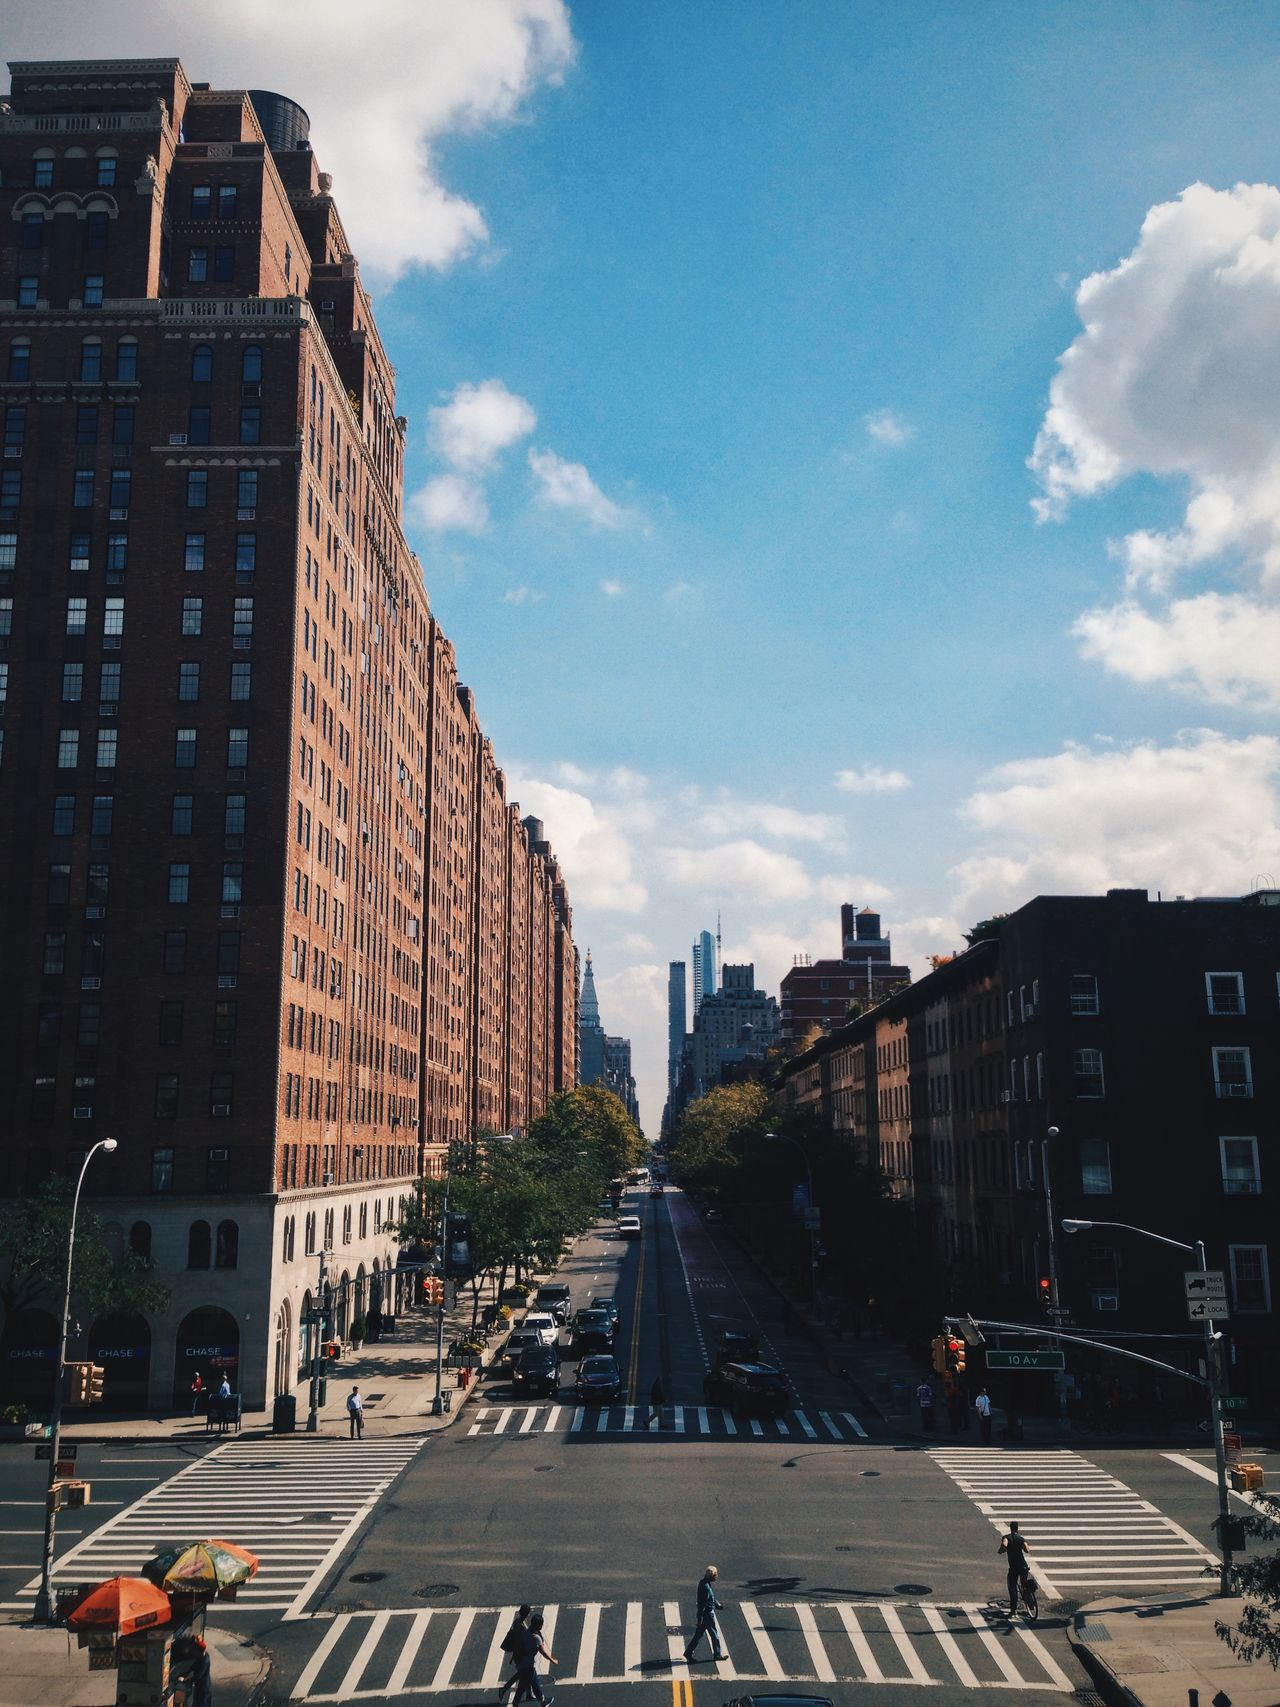 Architecture City City Life Crossing High Line Park New York New York City NYCrossings Street Summer Travel USA Wanderlust